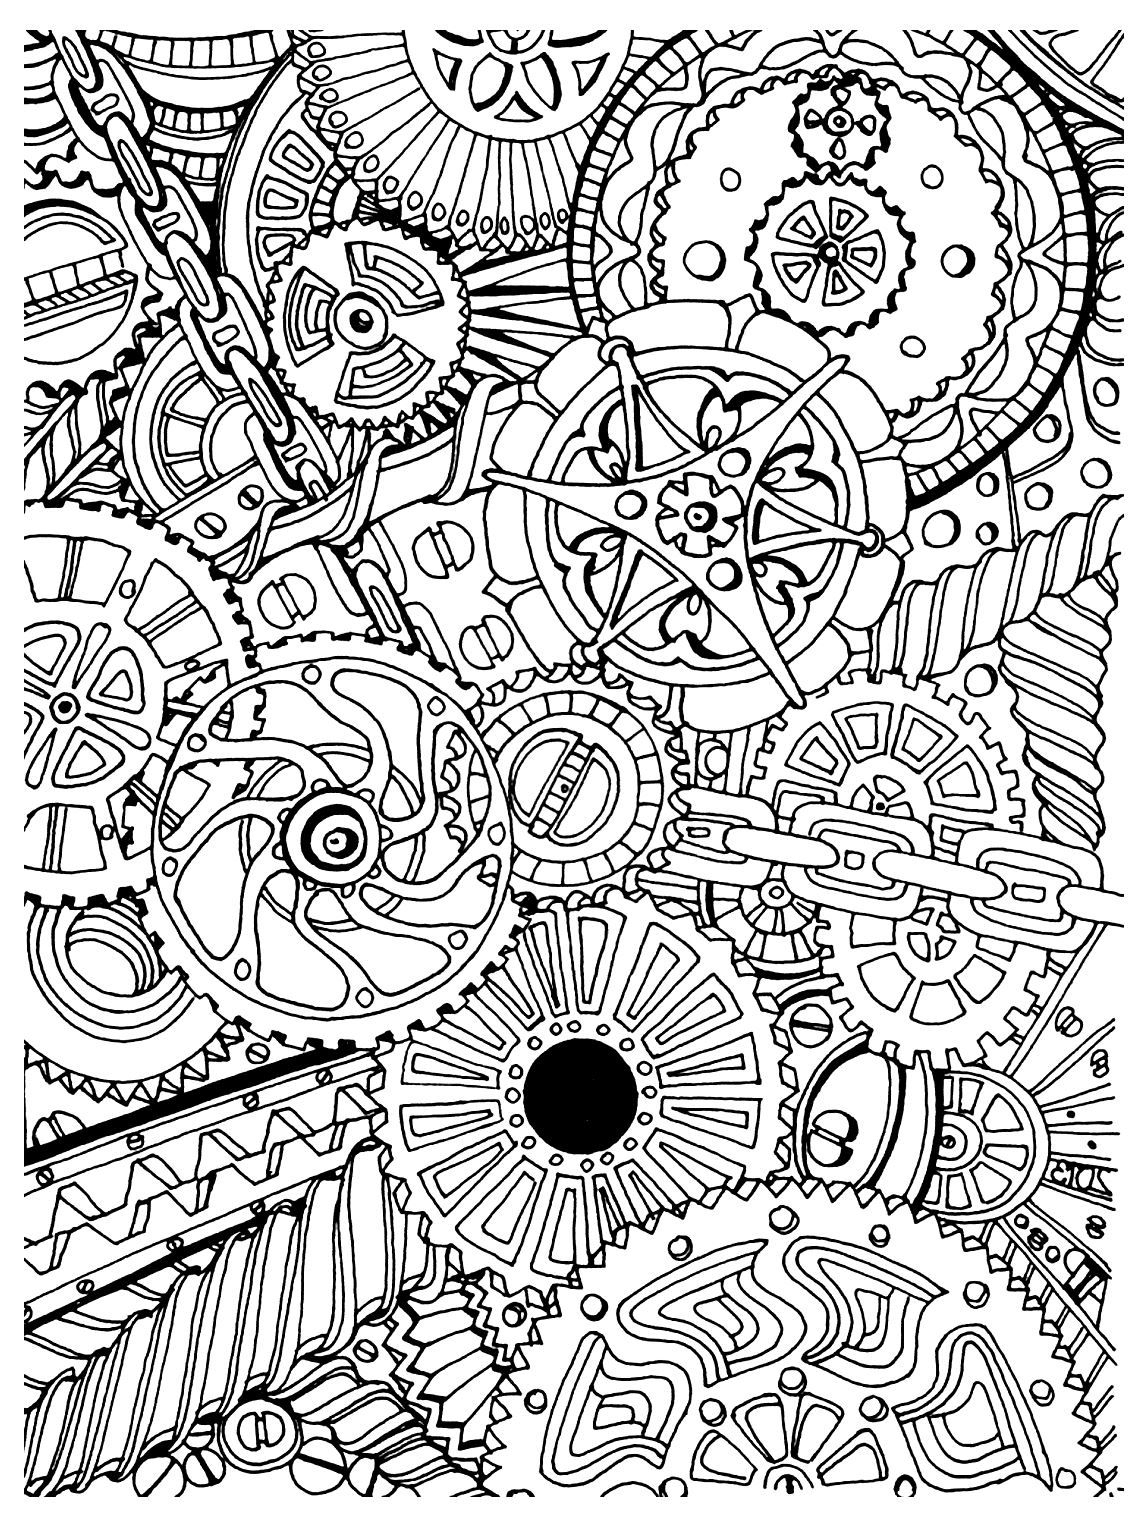 Free Coloring Page Coloring-Adult-Zen-Anti-Stress-Mechanisms-To - Free Printable Zen Coloring Pages